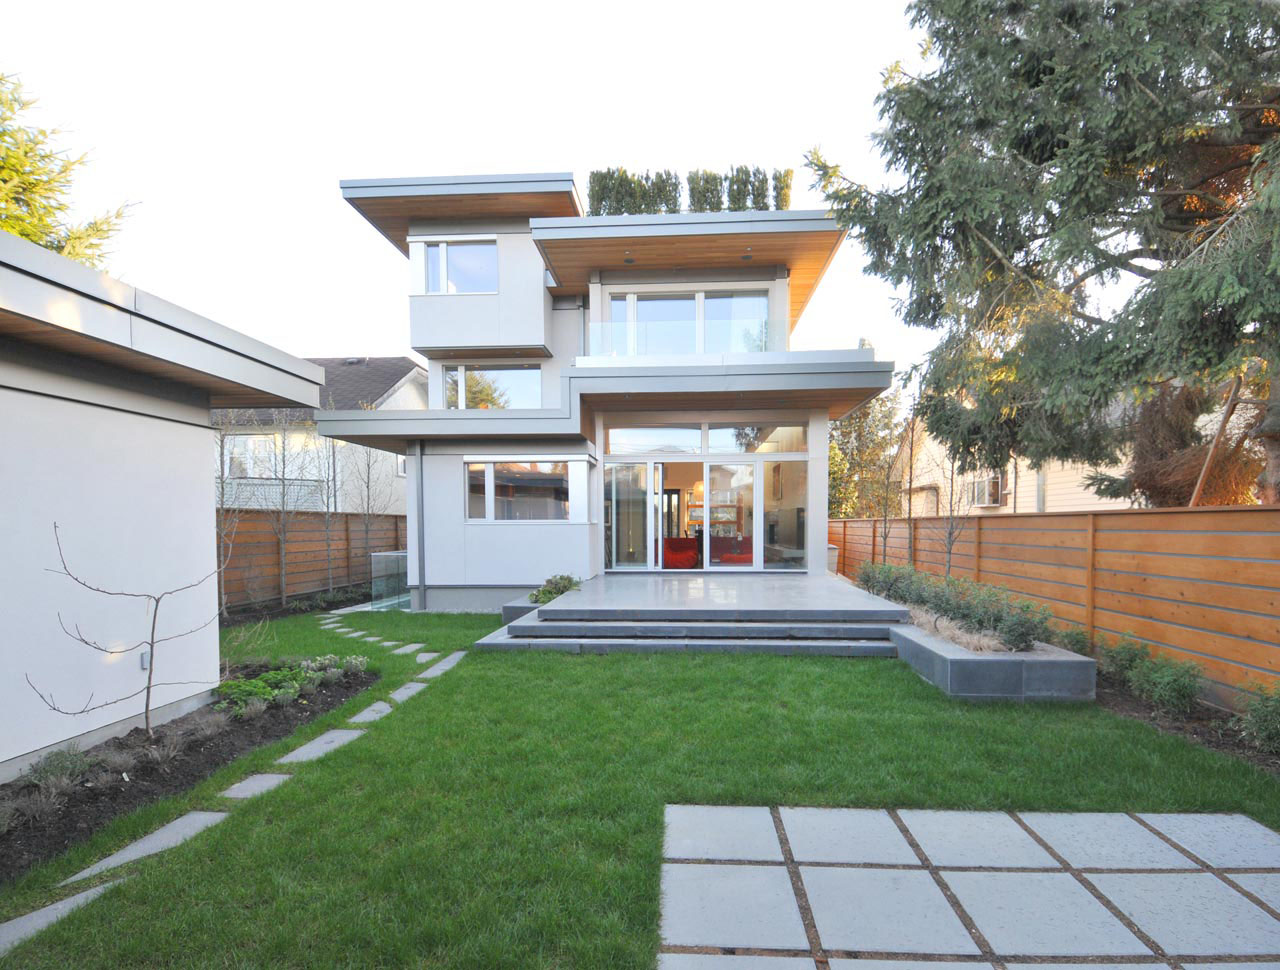 Sustainable Home Design In Vancouver | iDesignArch | Interior ...